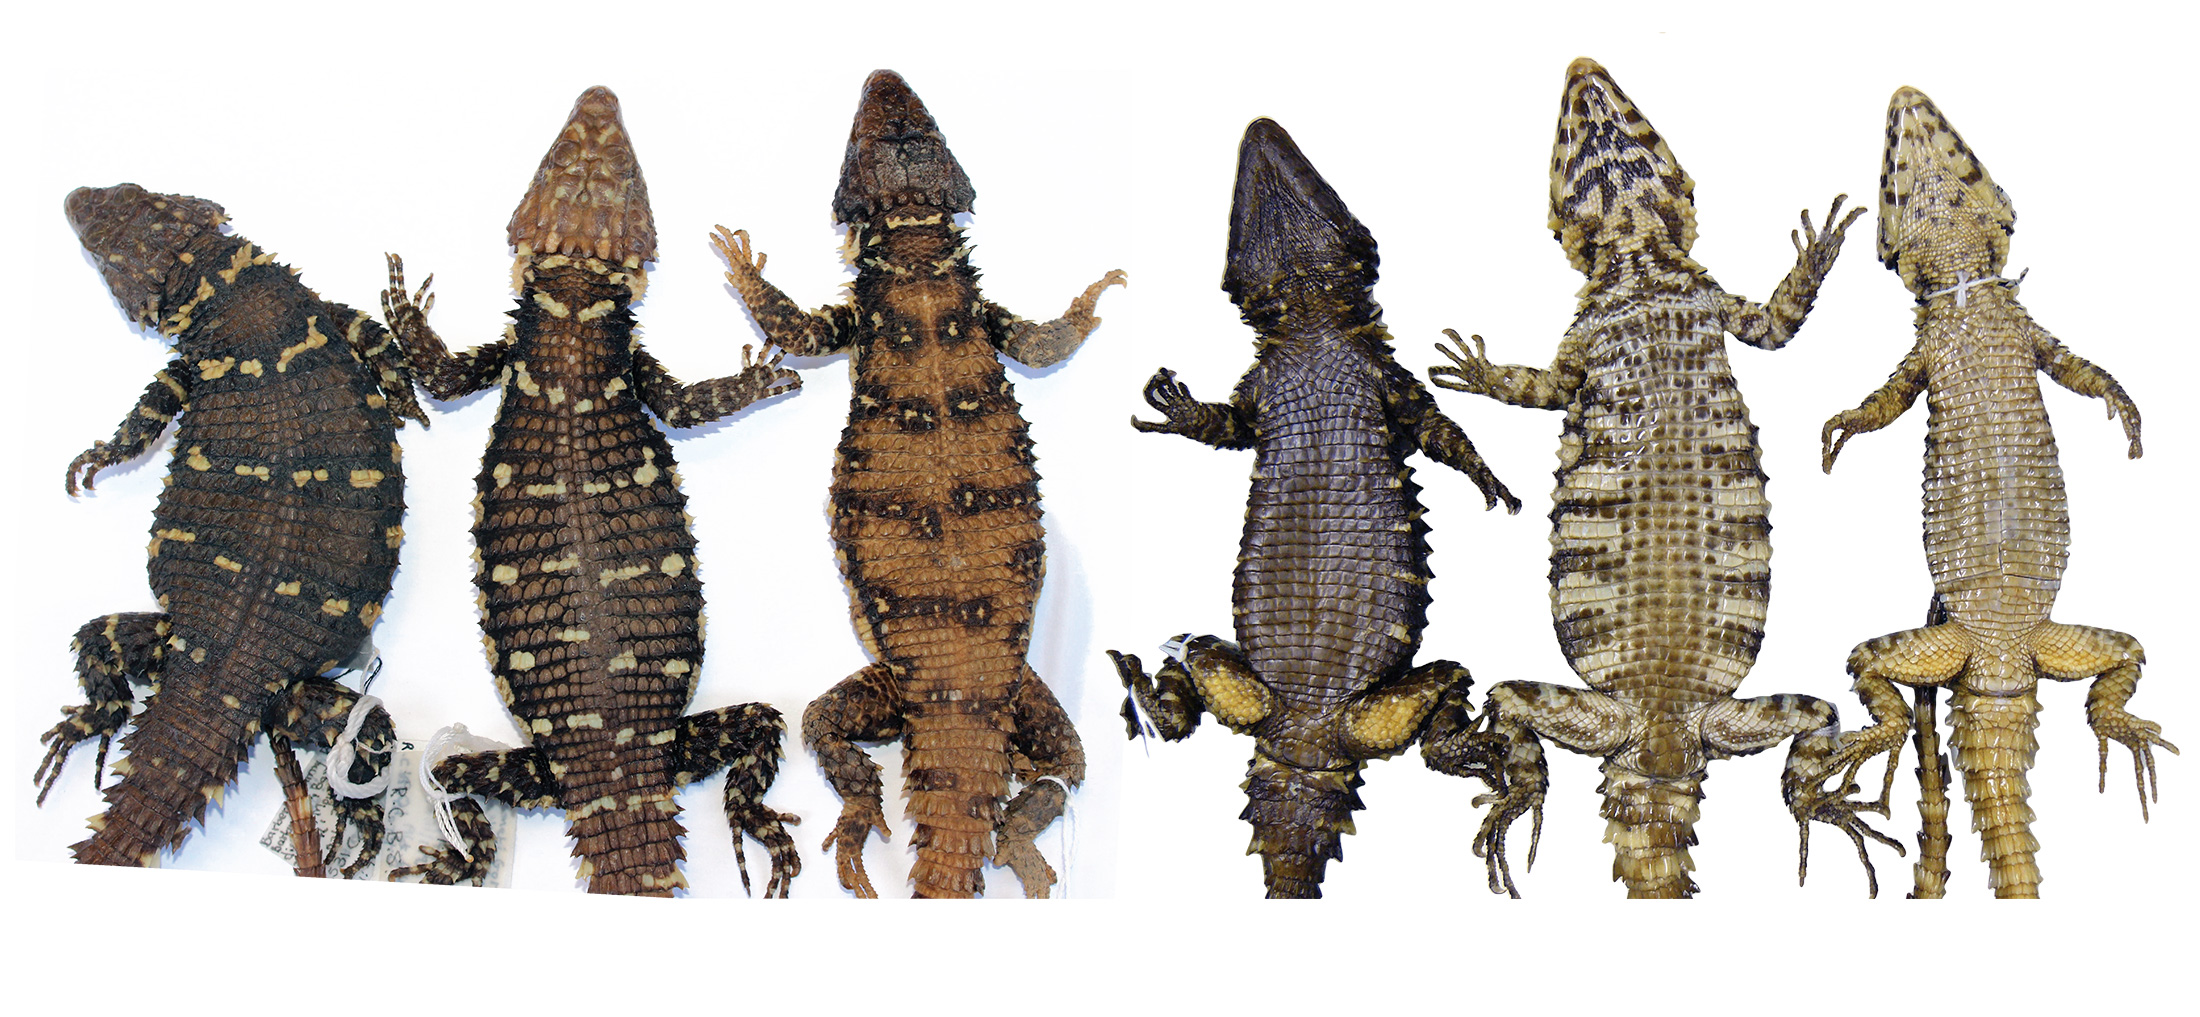 Three species of dragon lizards